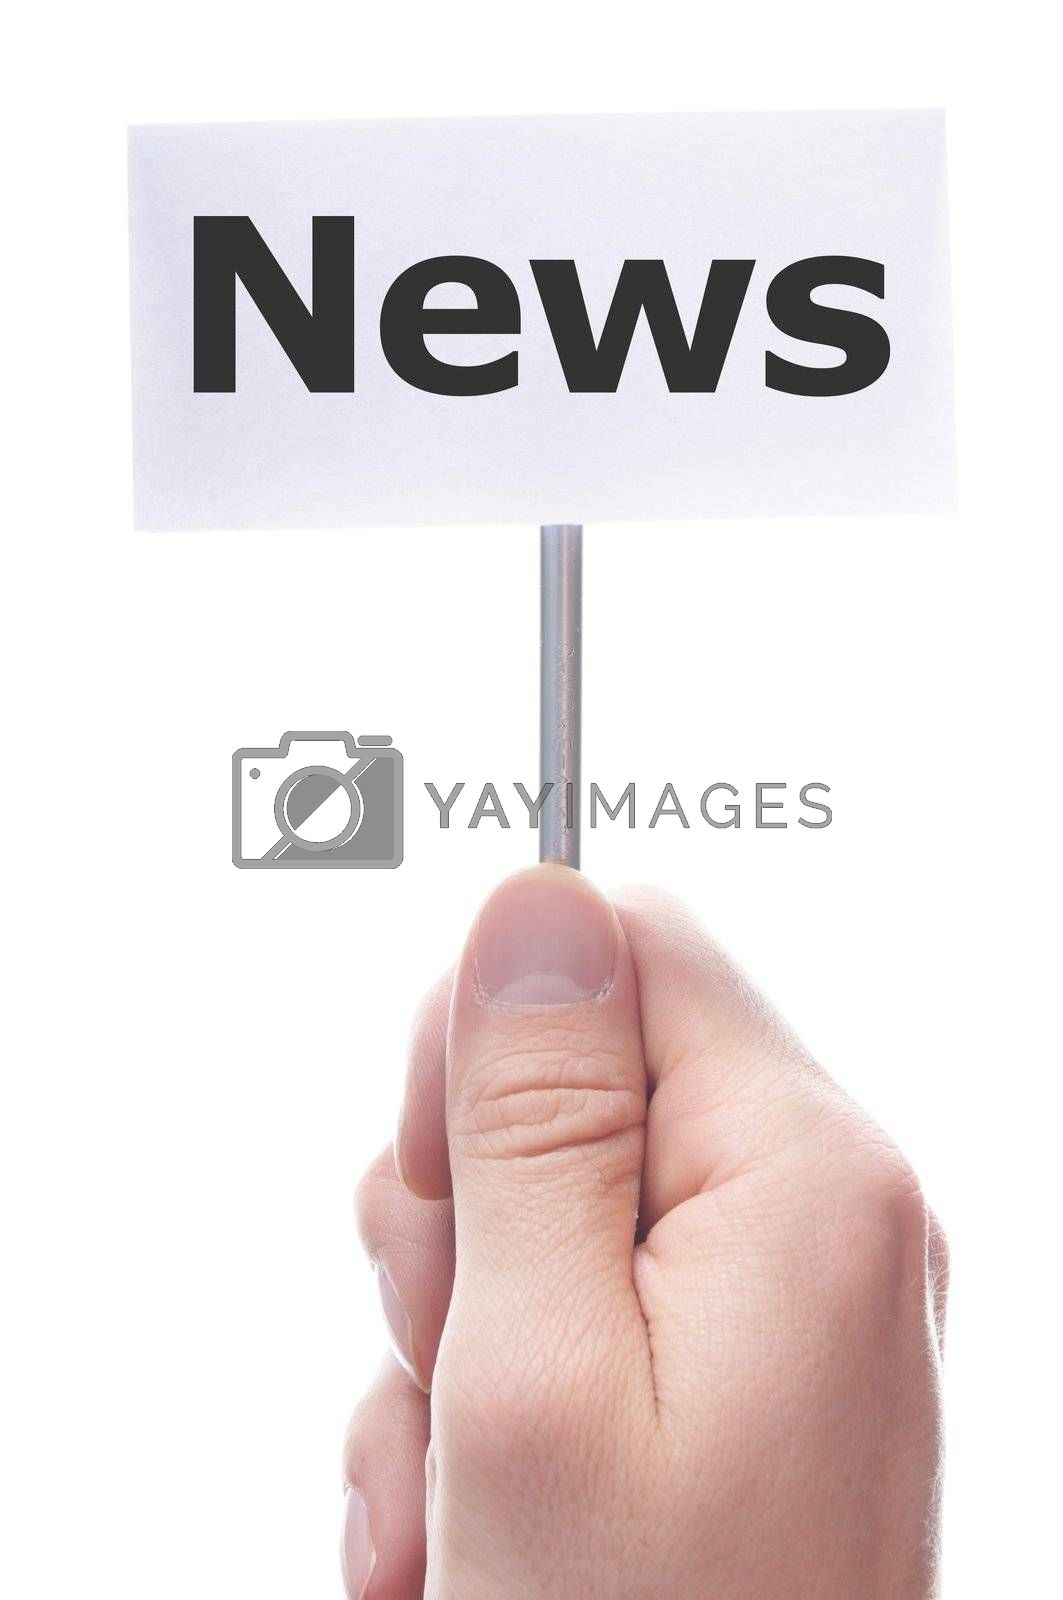 news concept with hand word and paper